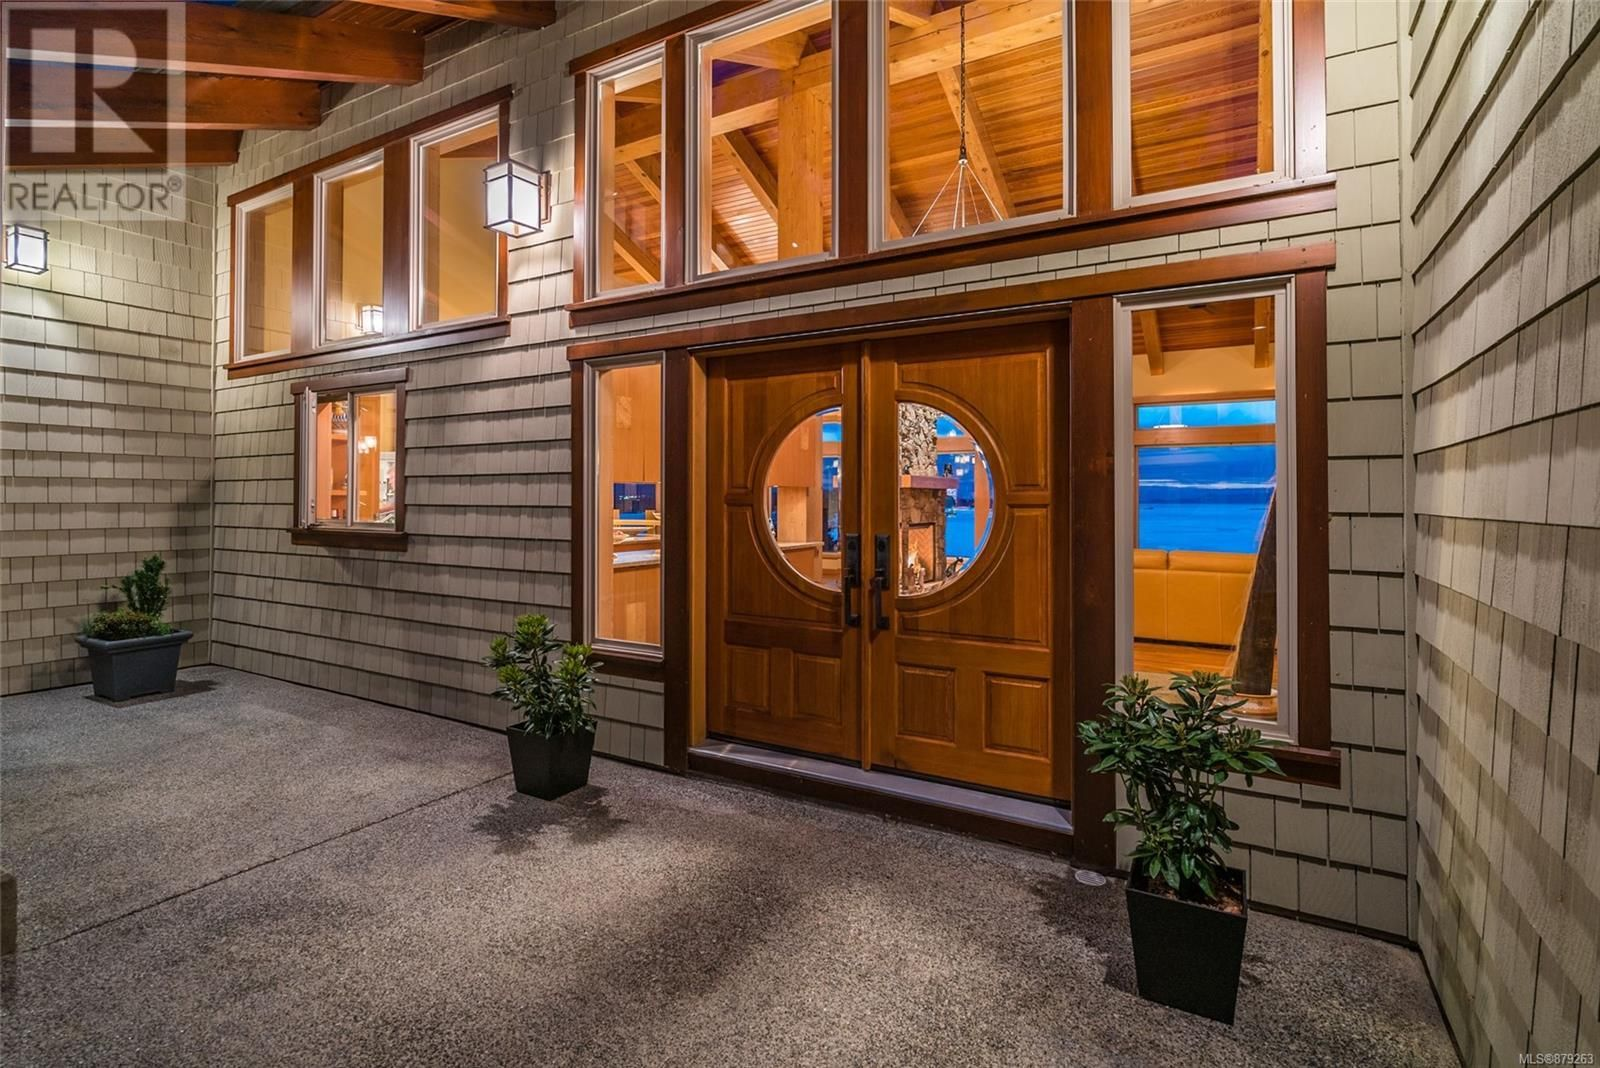 Photo 5: Photos: 825 Duthie Ave in Gabriola Island: House for sale : MLS®# 879263